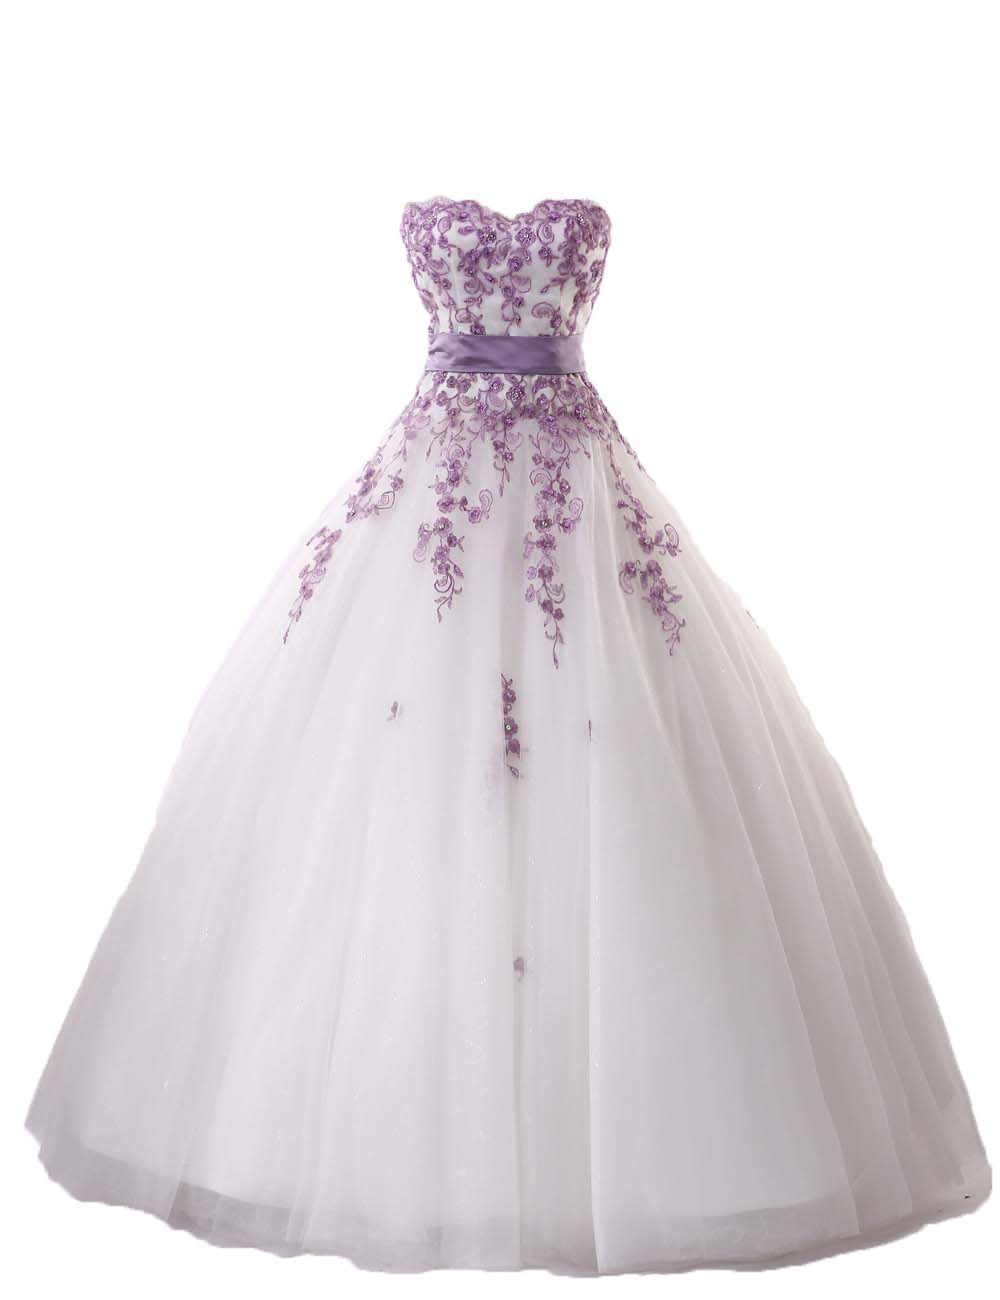 Lilac wedding dresses for sale bridesmaid dresses for Wedding dress for sale cheap